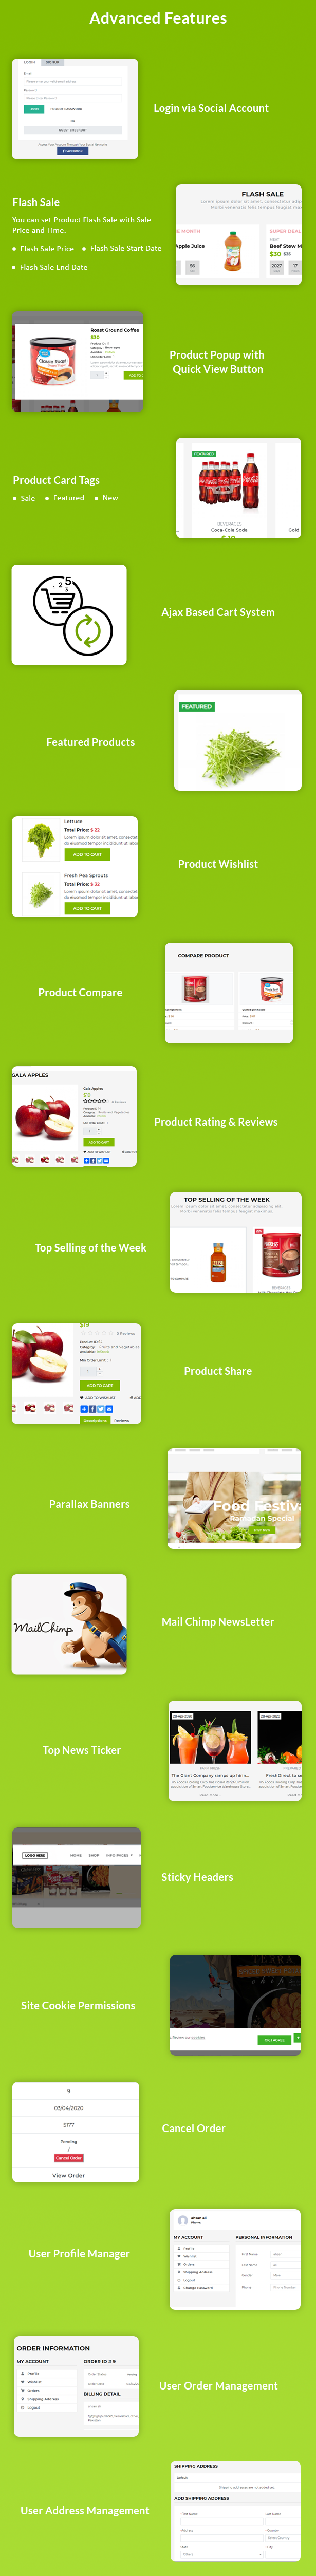 Best Ecommerce Solution with Delivery App For Grocery, Food, Pharmacy, Any Stores / Laravel + IONIC5 - 32